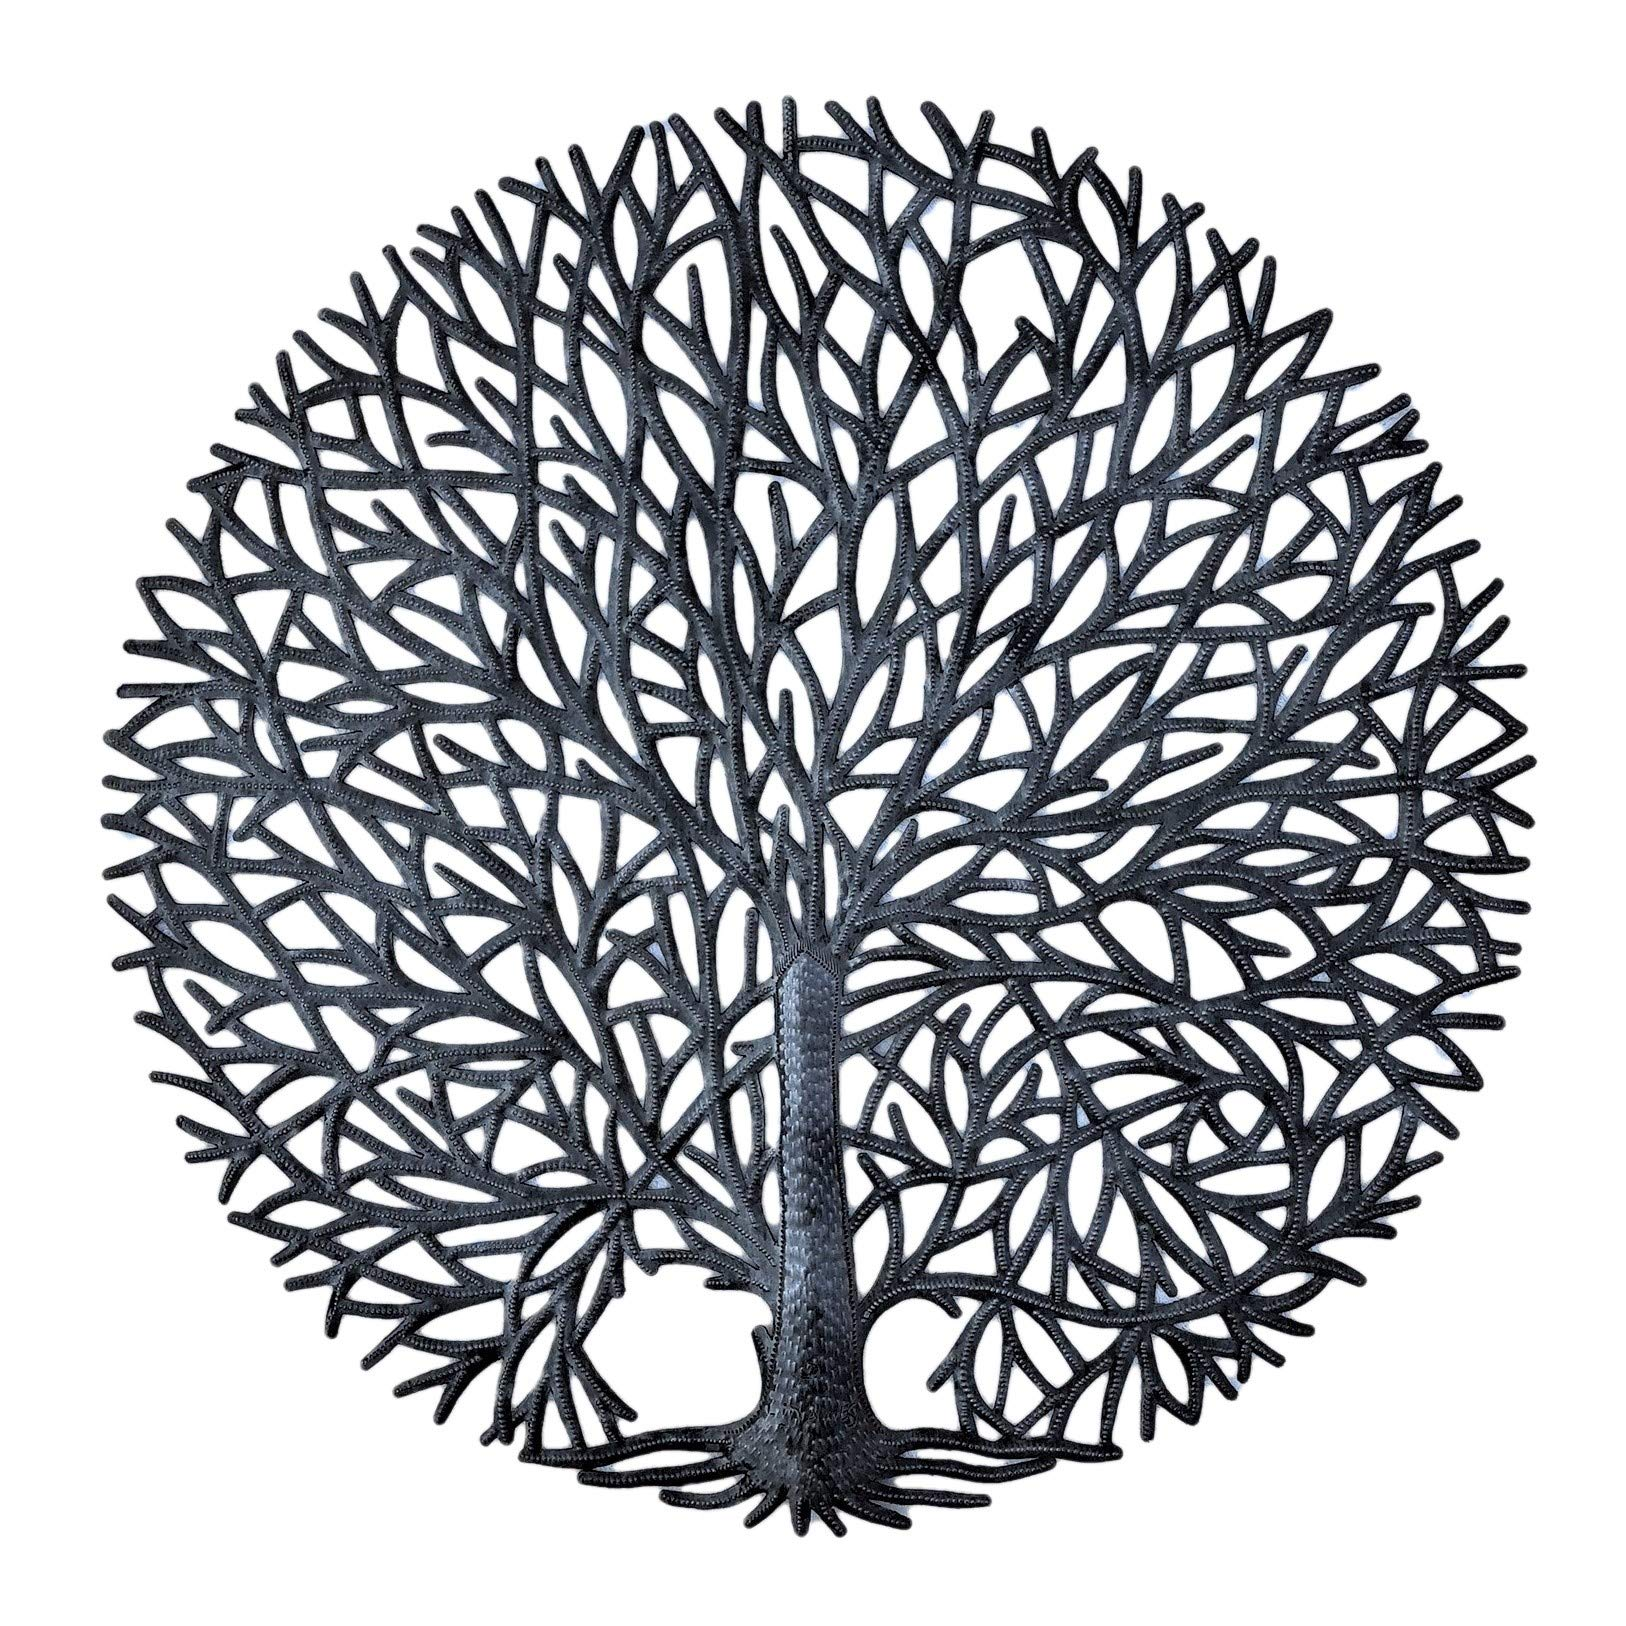 Haitian Tree of Life Wall Plaque, Decorative Kitchen Metal Tree, Wall Hanging Art, Indoor or Outdoor Decor, Handmade in Haiti, NO Machines Used, 24 in. x 24 in. (Tranquility Tree)